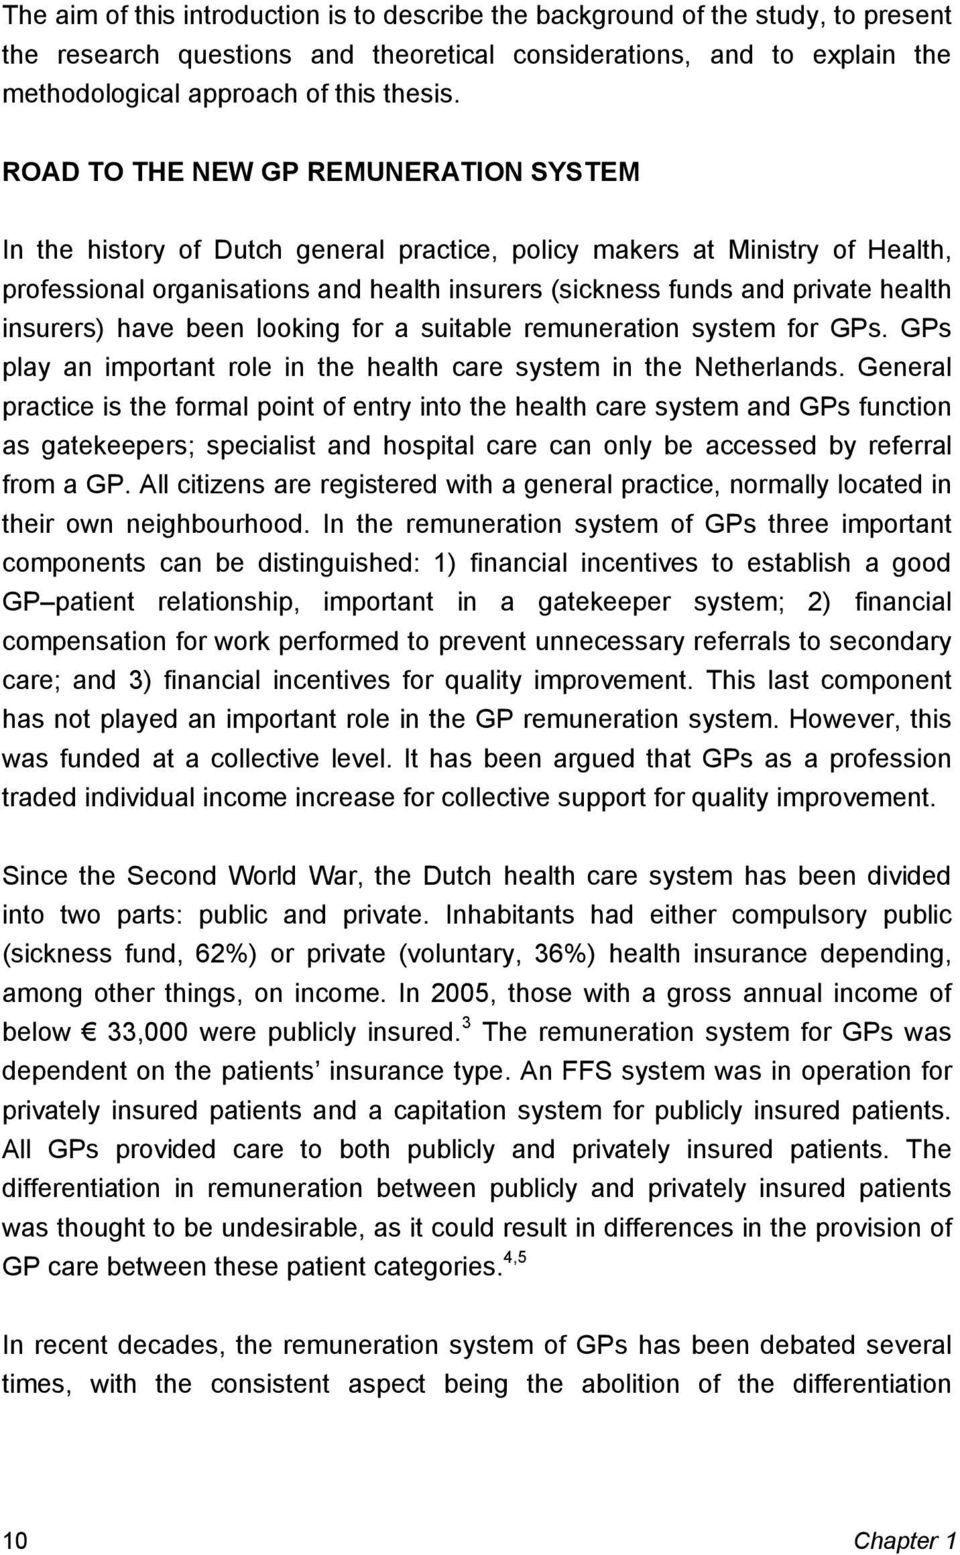 insurers) have been looking for a suitable remuneration system for GPs. GPs play an important role in the health care system in the Netherlands.